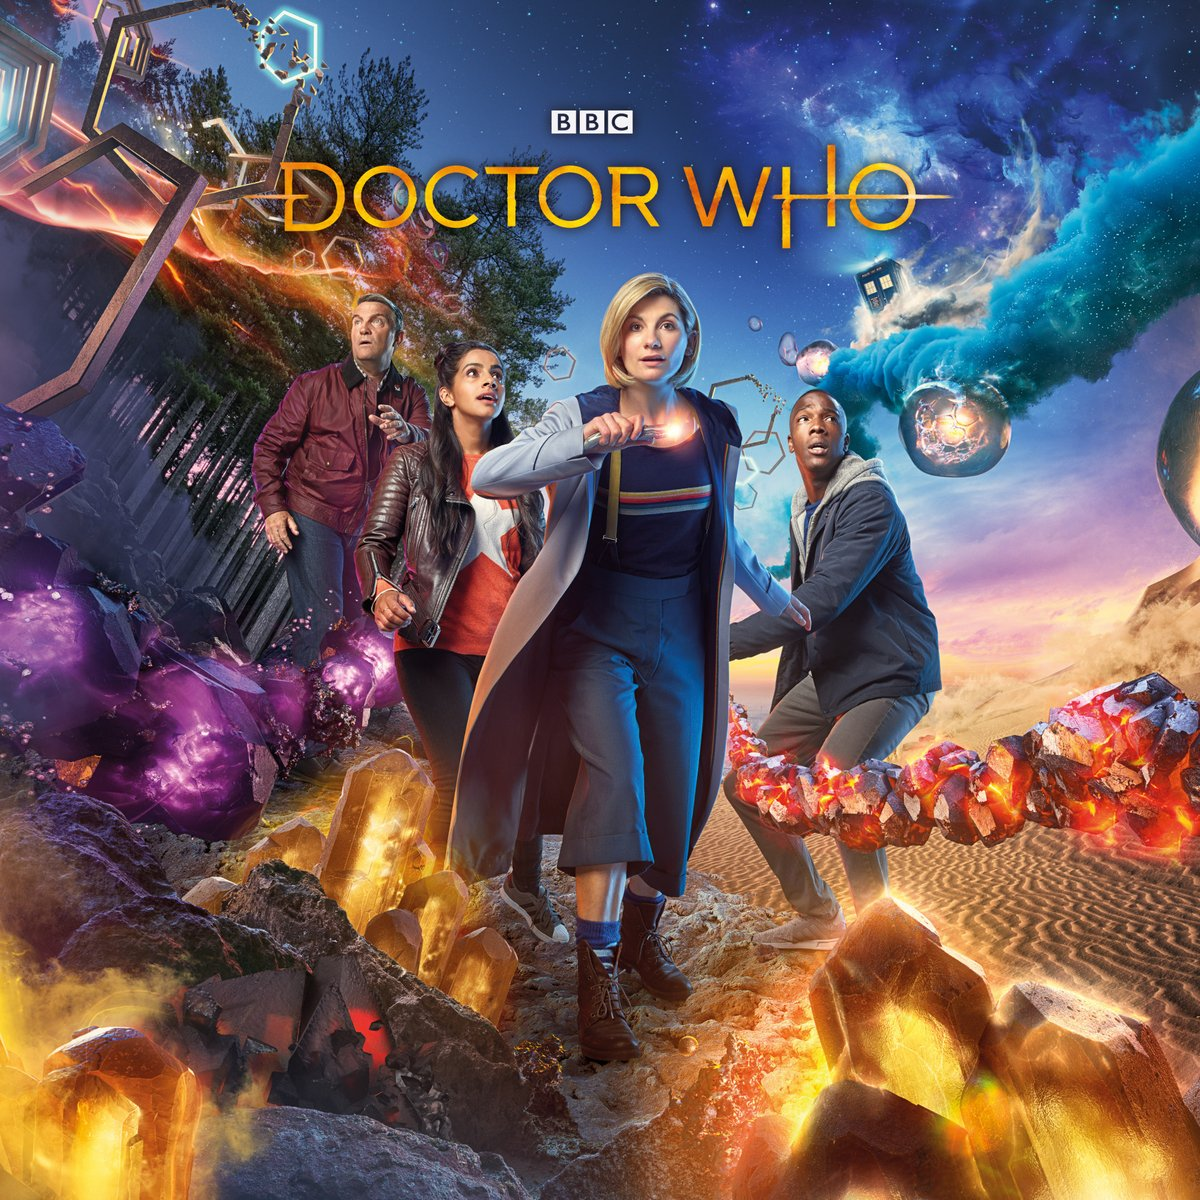 Dr Who Christmas Special 2019.Doctor Who New Year S Day Special Coming In 2019